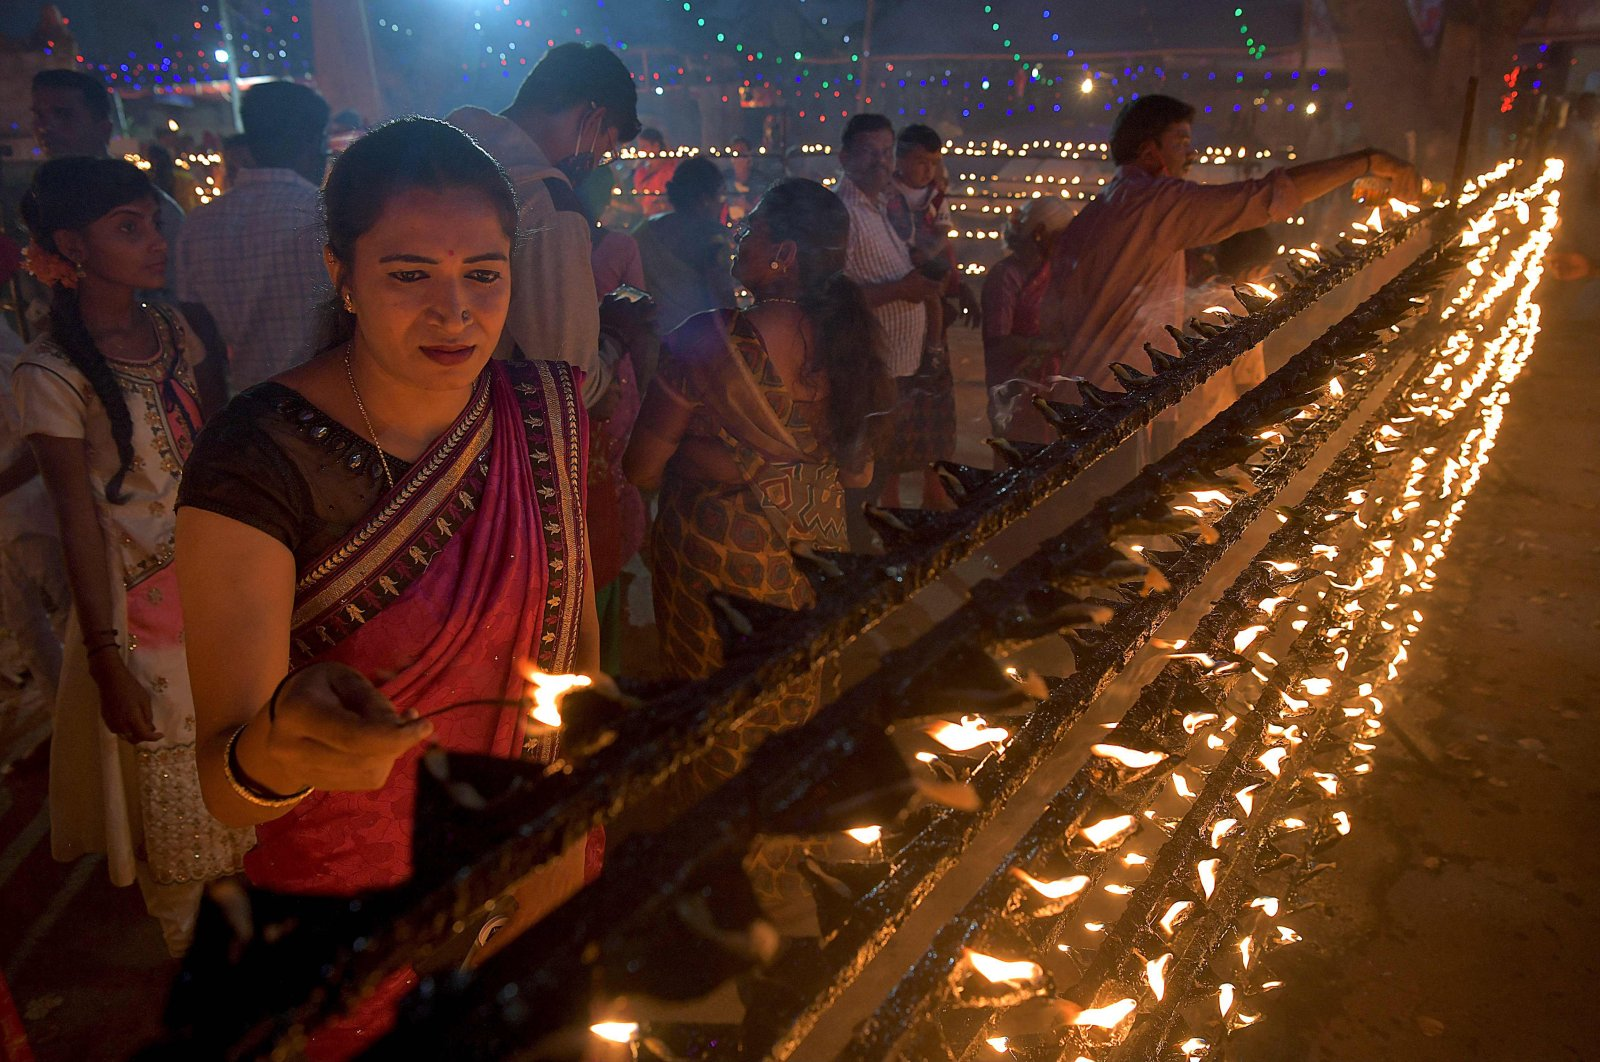 Hindu devotees light oil lamps during Lakshadeepotsava, the festival of a hundred thousand lamps, during the Shivarathri festival at the Basavanna Temple on the outskirts of Bangalore on March 11, 2021.(AFP Photo)